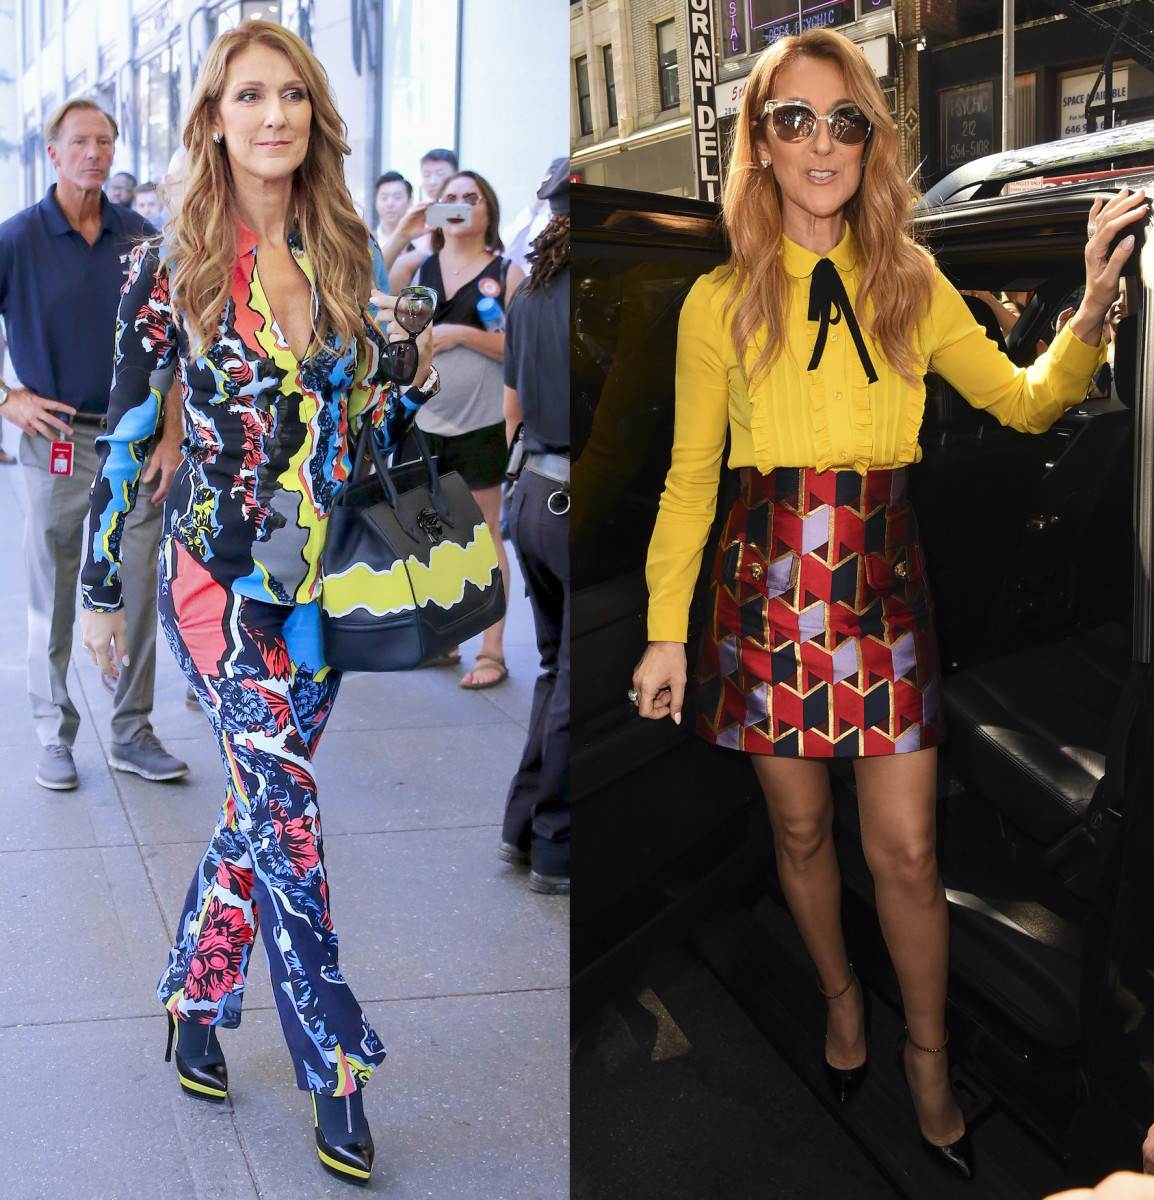 Celine Dion in head-to-toe Versace, left, and Gucci, right. Photos: Versace and Raymond Hall/GC Images